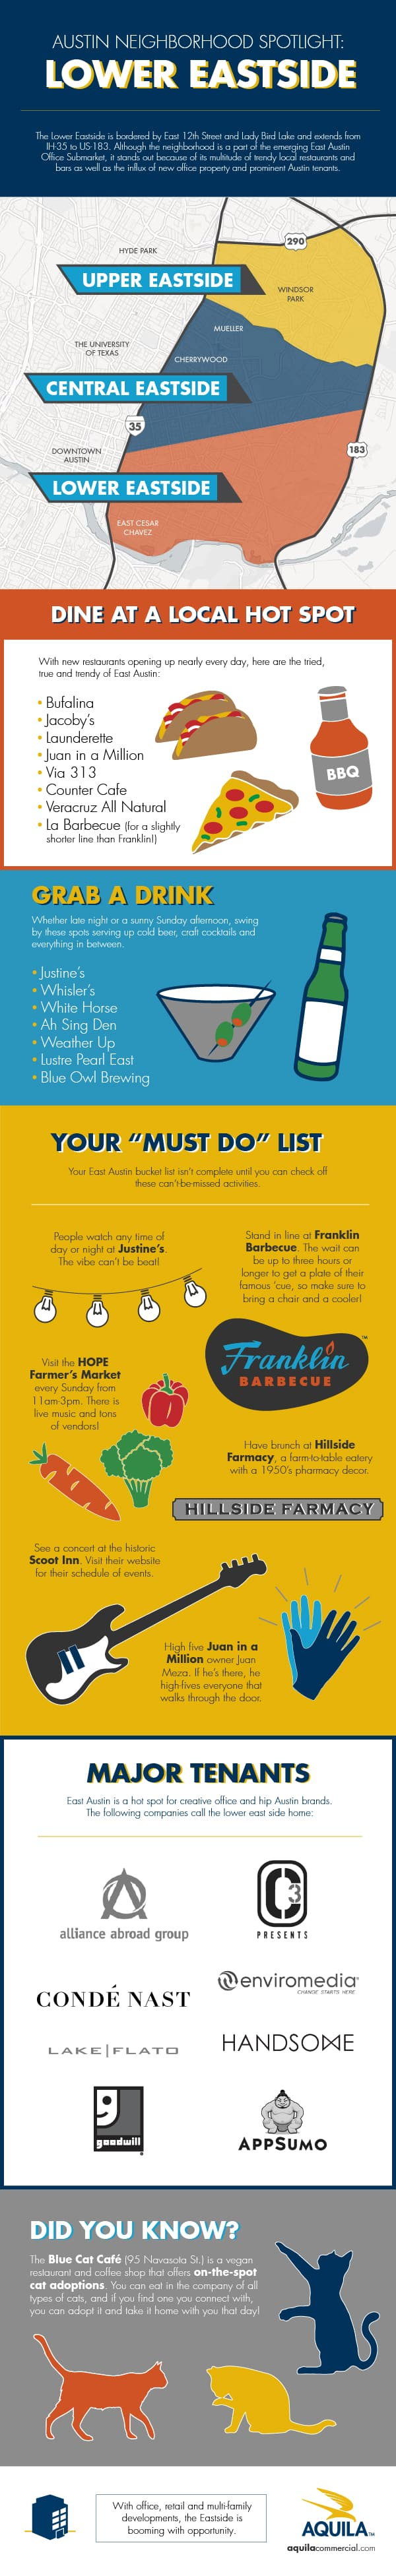 East Austin Infographic: Things to Do, Where to Eat, Where to Drink (Austin, Texas)